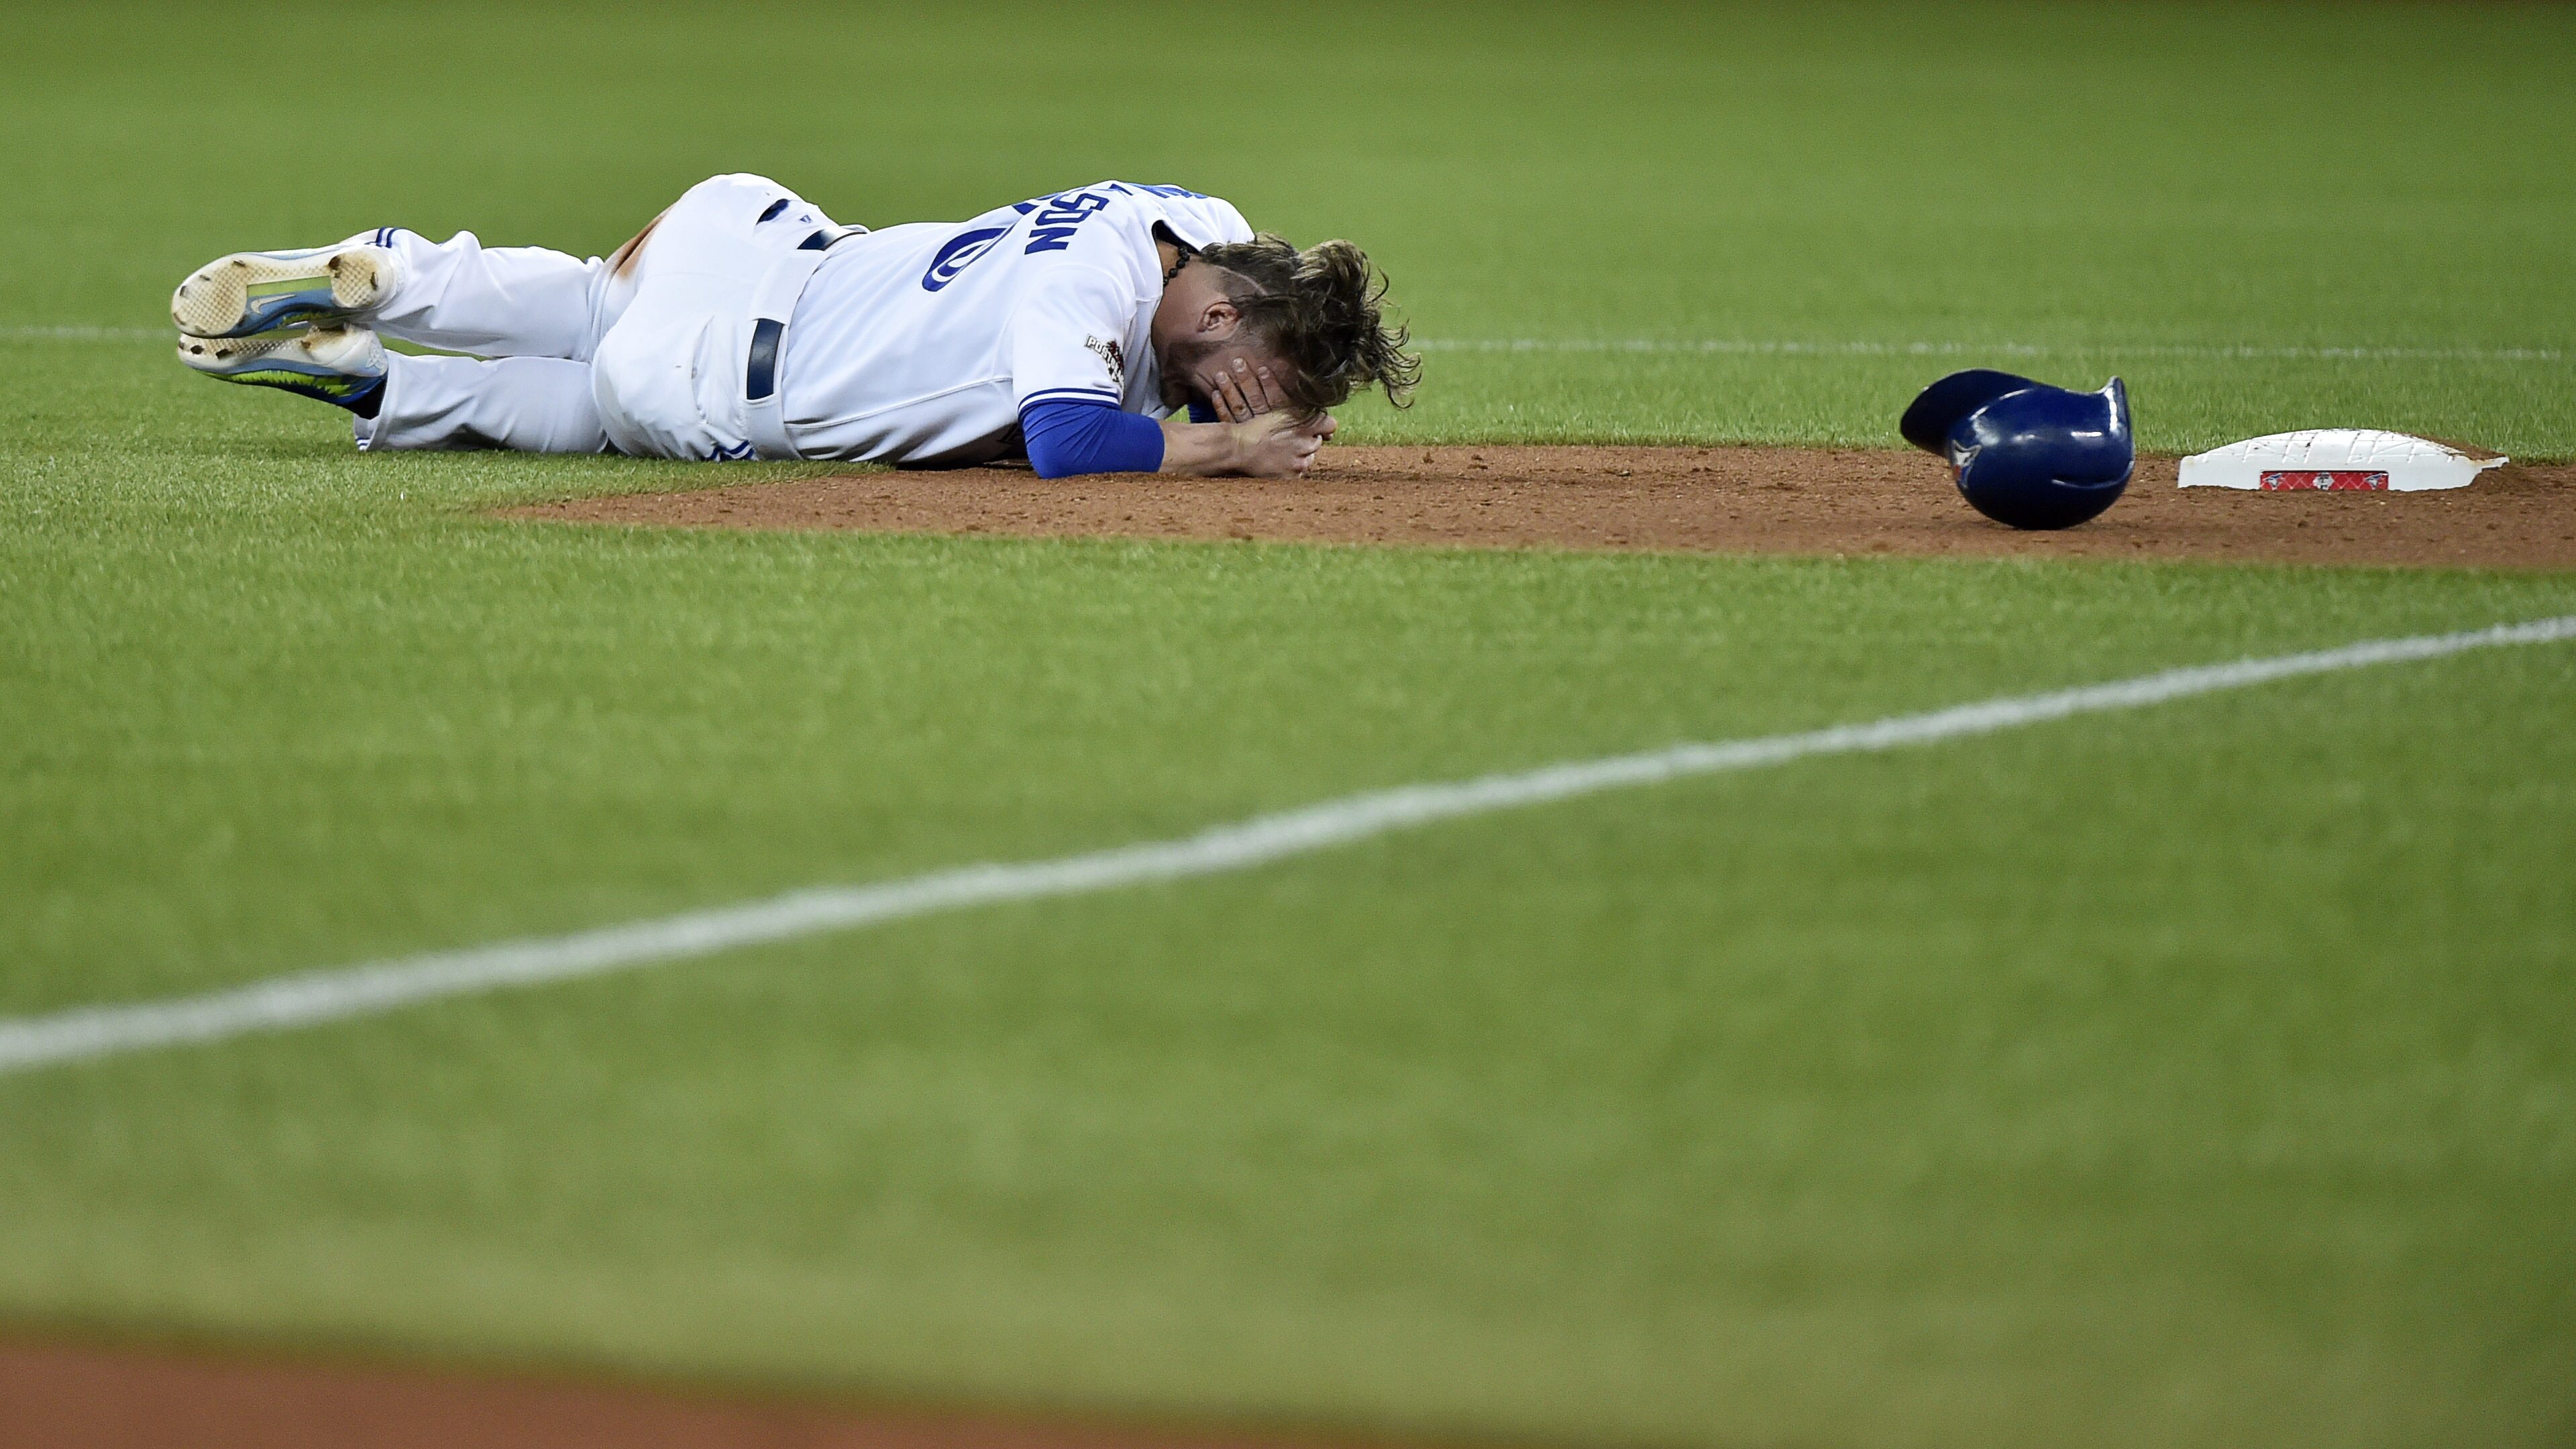 Toronto Blue Jays' Josh Donaldson lies on the ground after breaking up a double play during the fourth inning of Game 1 of the American League Division Series in Toronto on Thursday, Oct. 8, 2015. (Nathan Denette/The Canadian Press via AP) MANDATORY CREDI